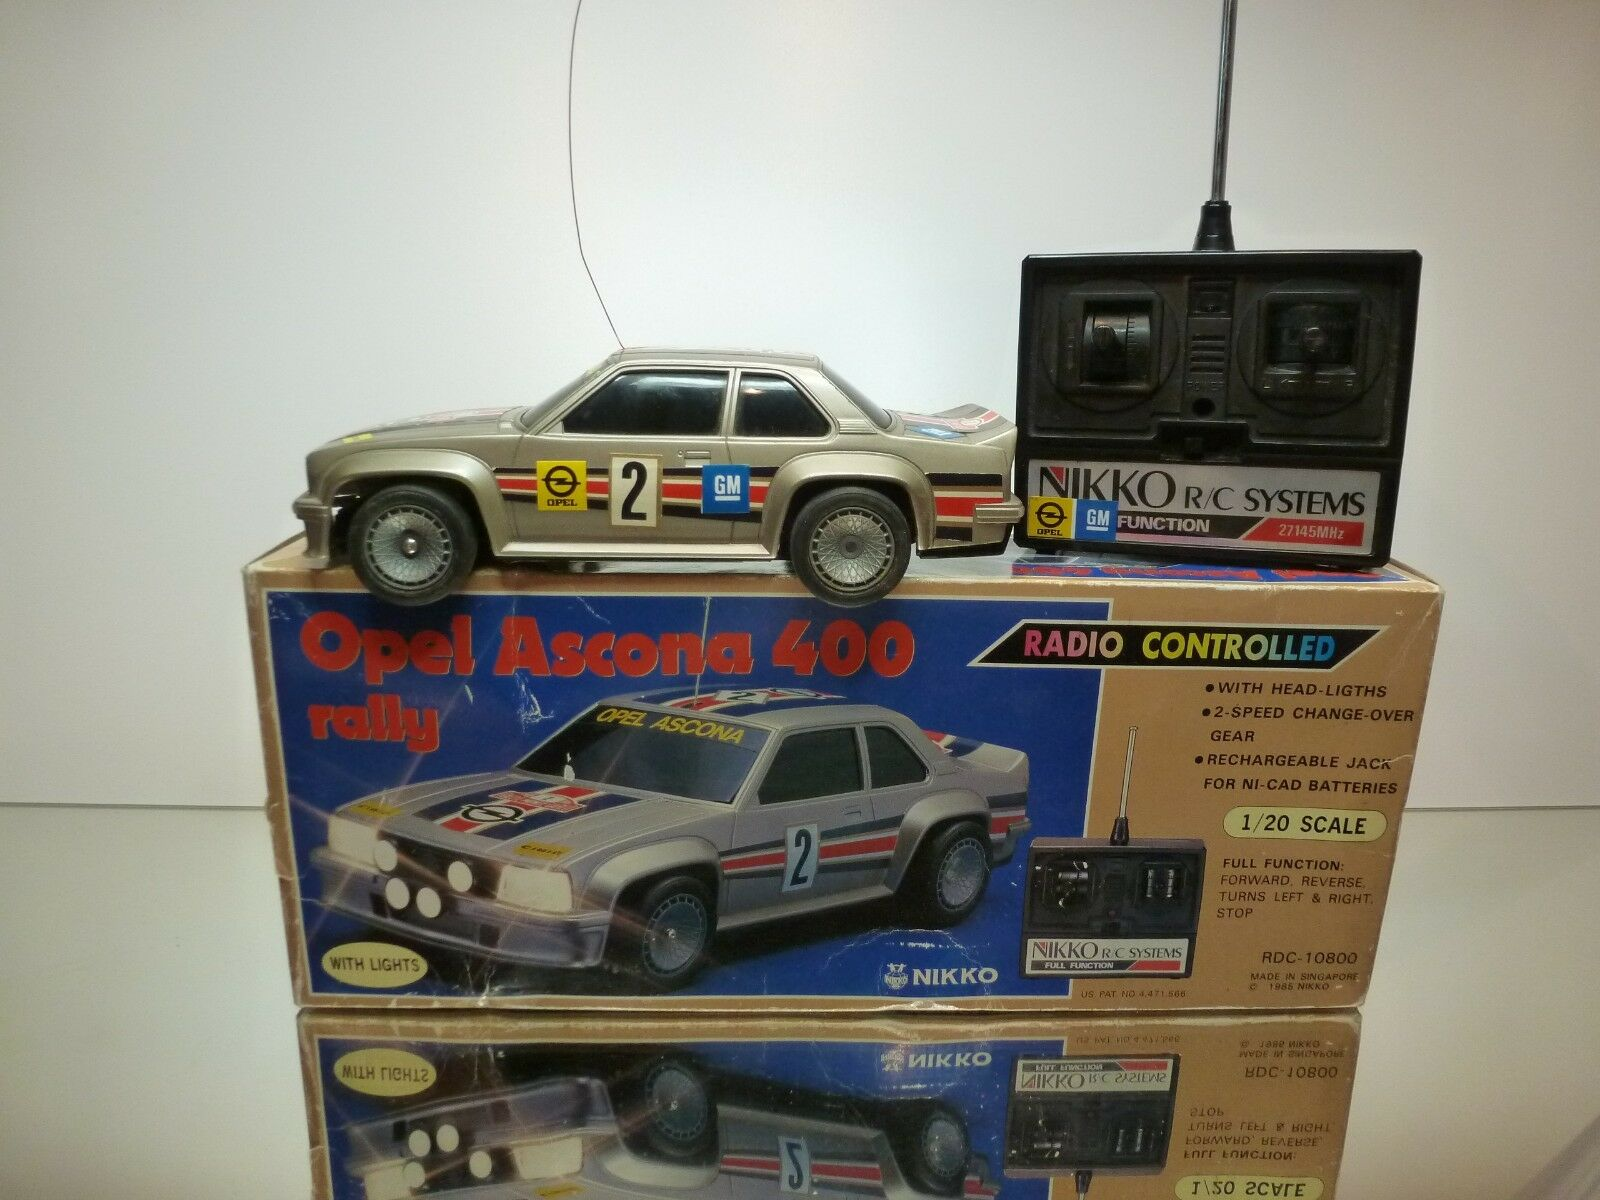 NIKKO RADIO CONTROLLED OPEL ASCONA 400 RALLY  2 - gris 1 20 - GOOD IN BOX